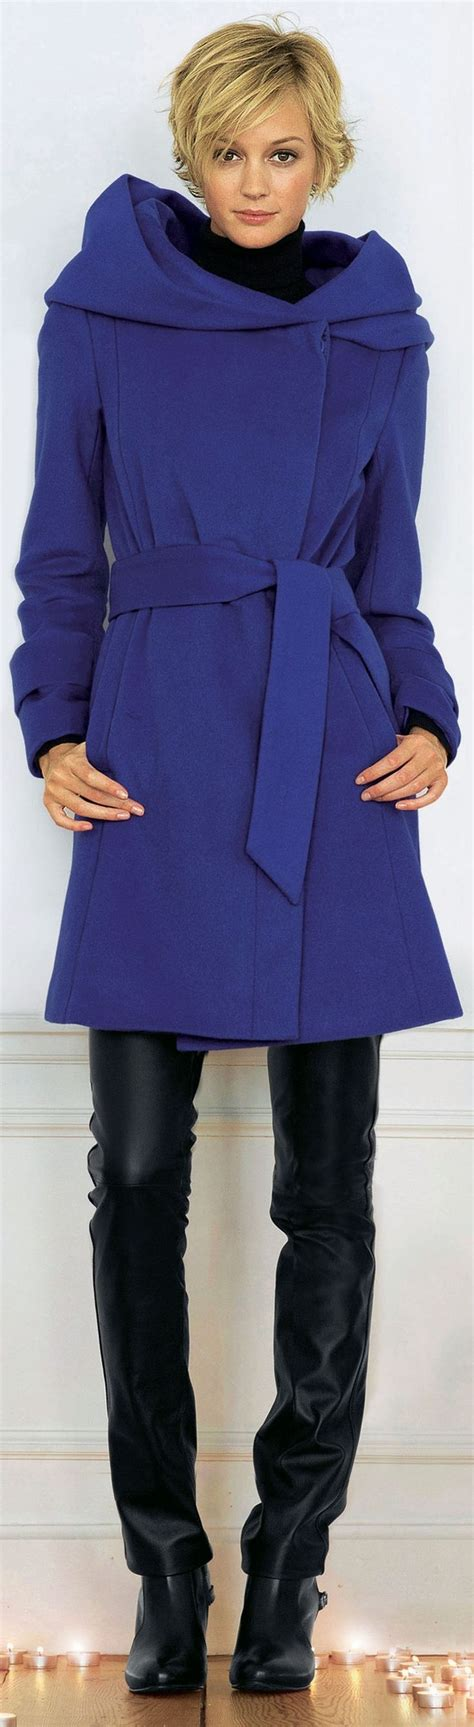 comfortable clothing for women over 60 288 best images about fall fashion for women over 40 50